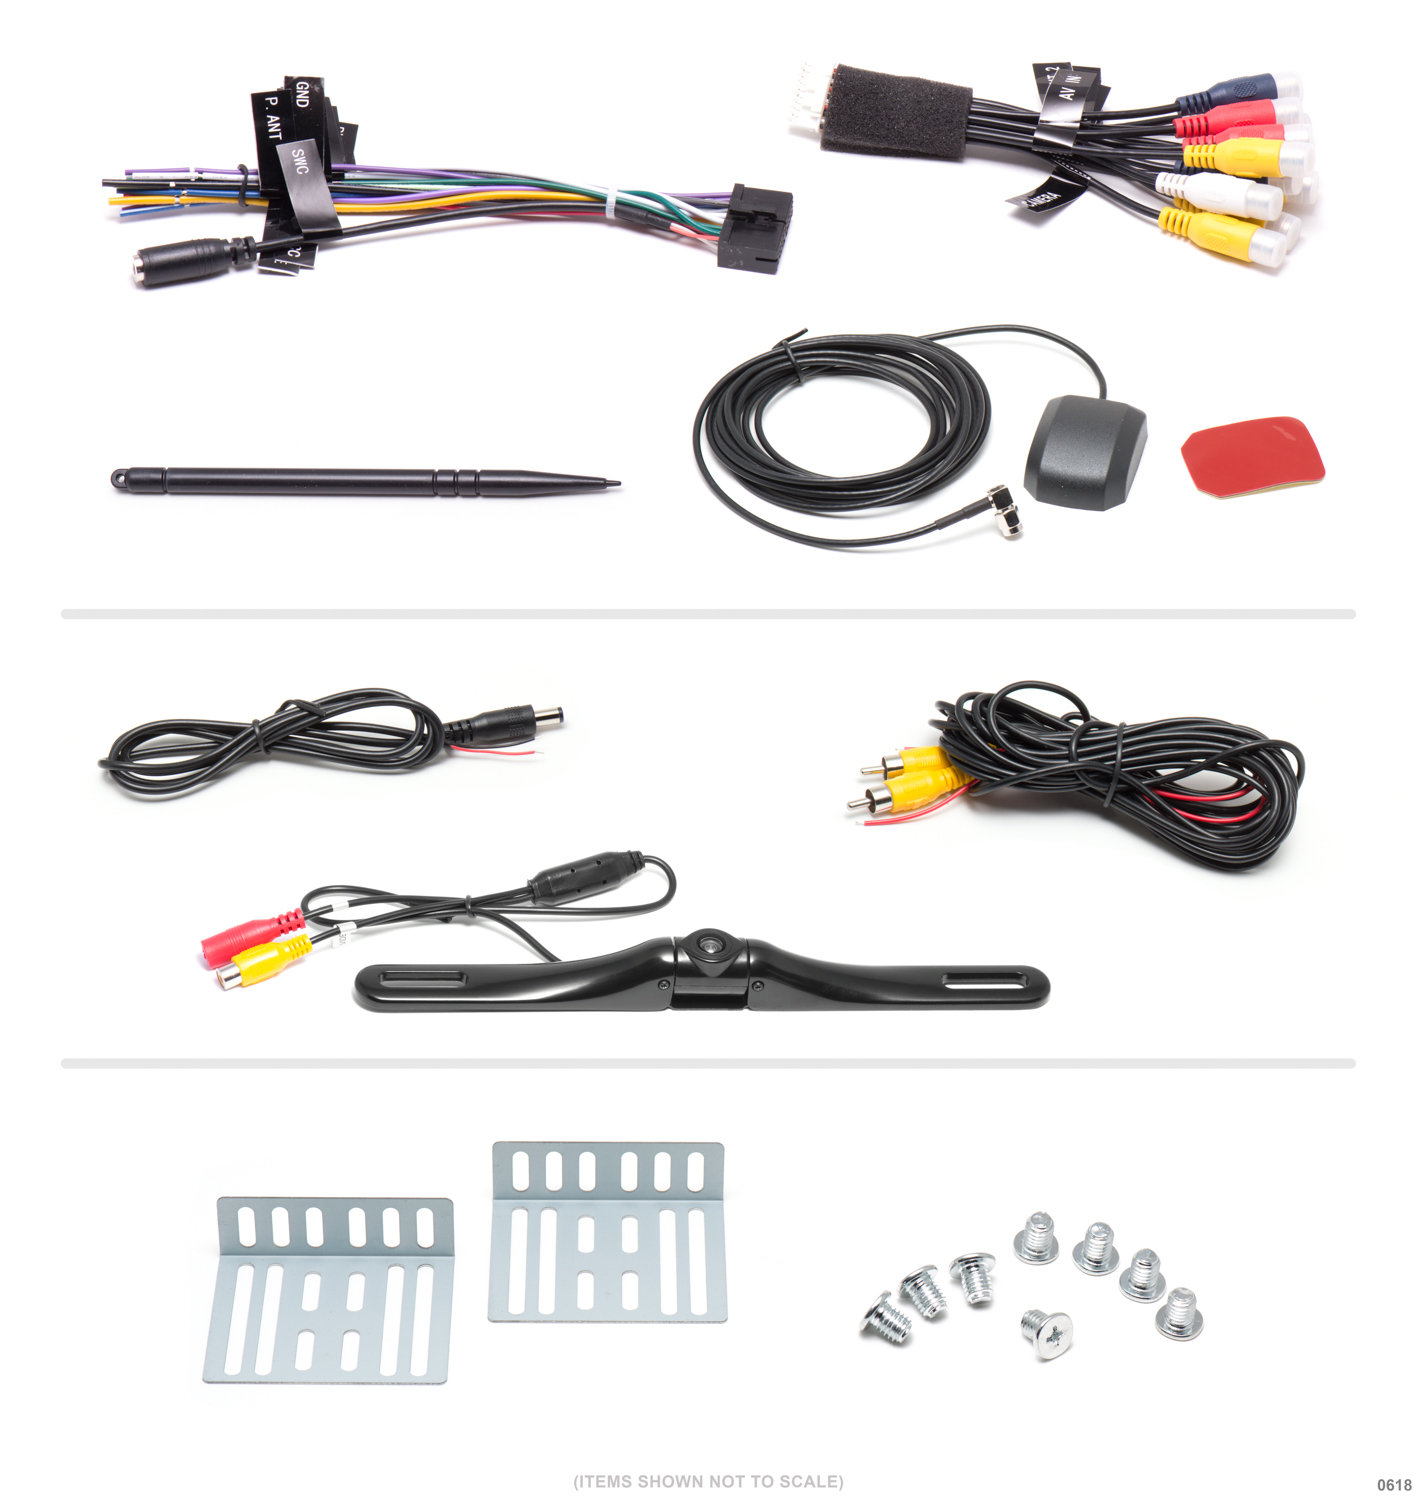 hight resolution of boss bv9977 wiring harness boss bv9970 manual wiring